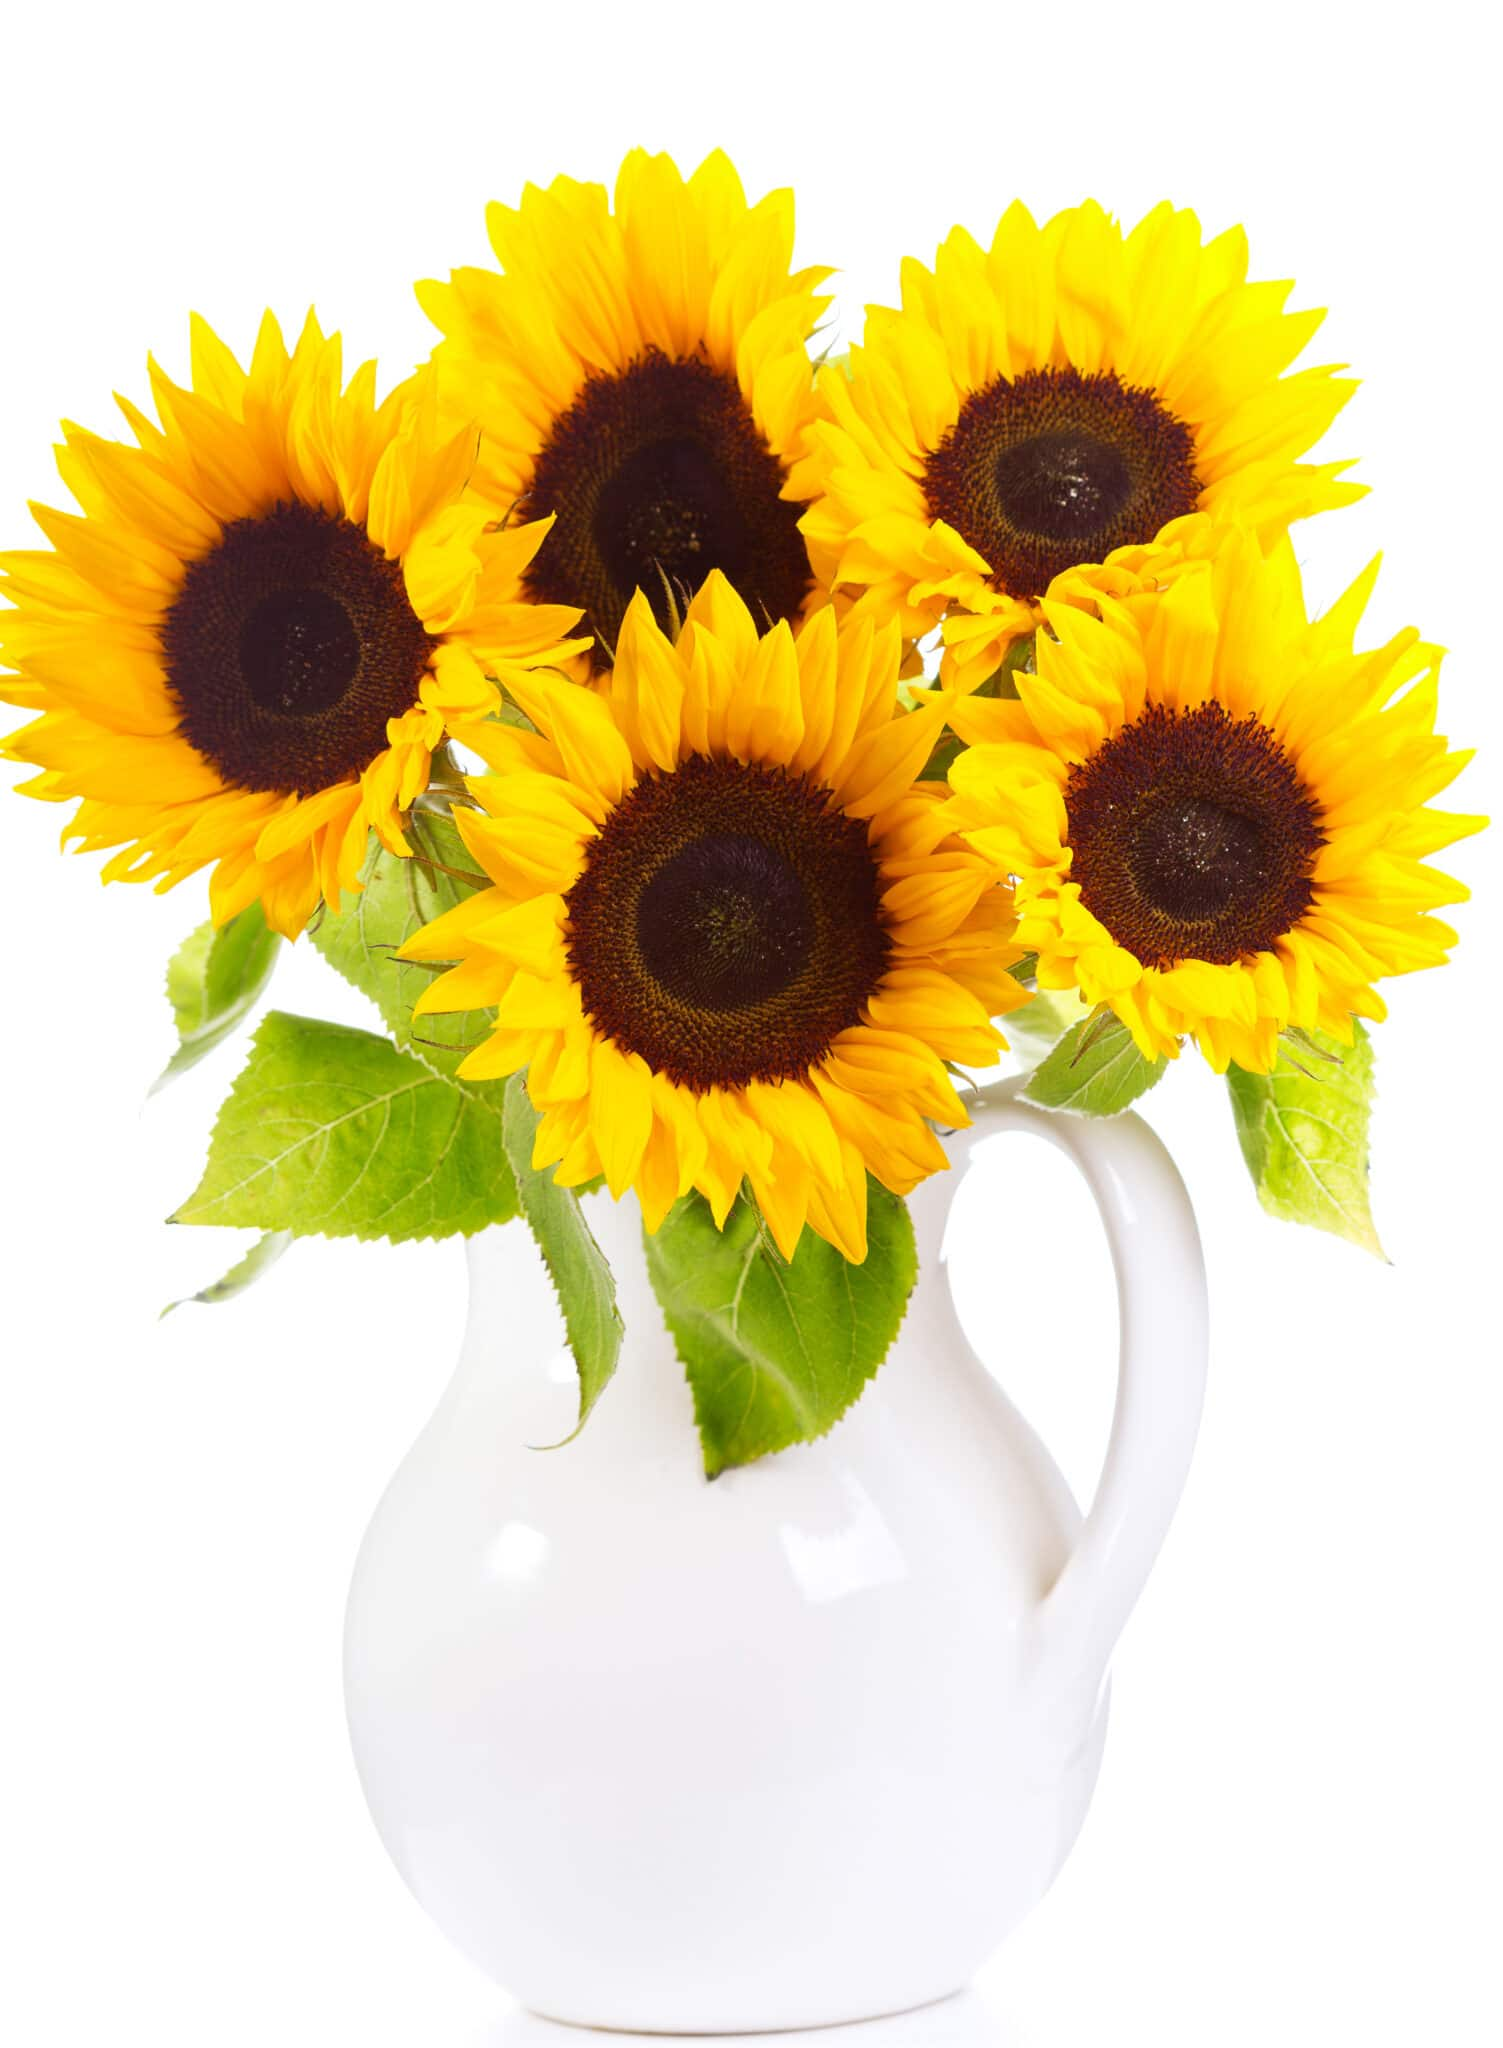 A bundle of cut sunflowers on display in a white jug.